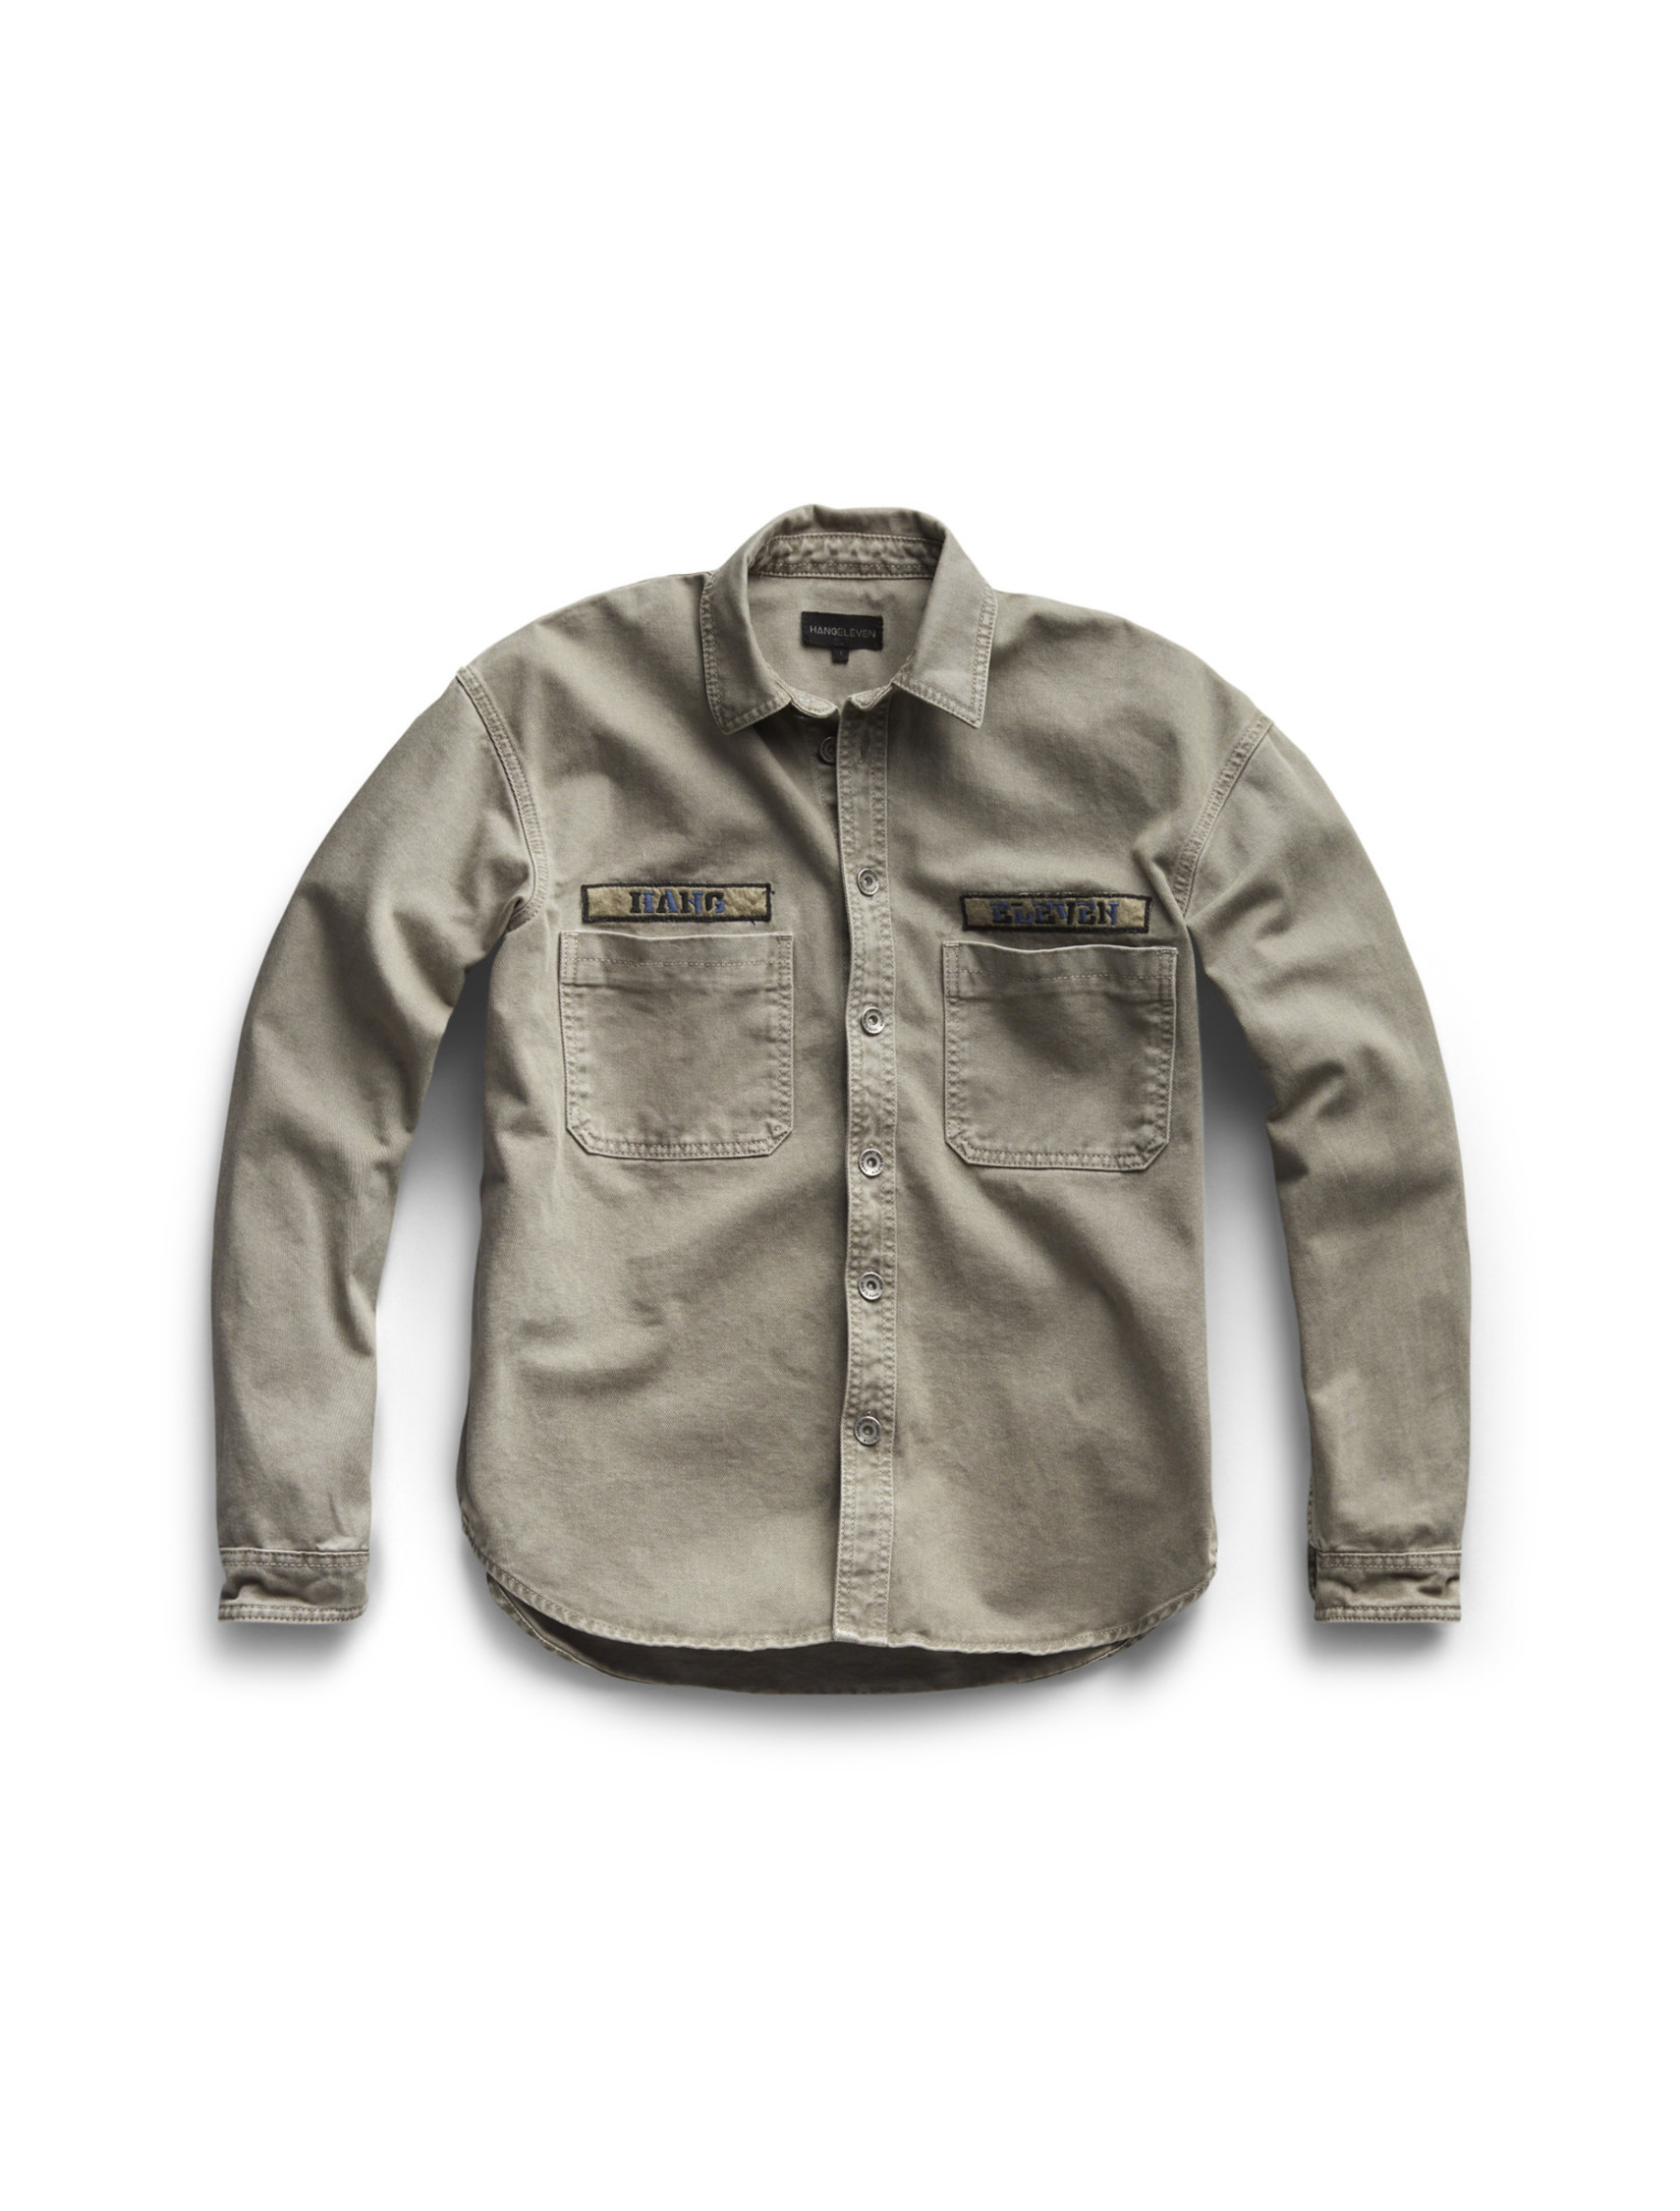 Hang Eleven Utility Jacket - Military Green (last sizes)